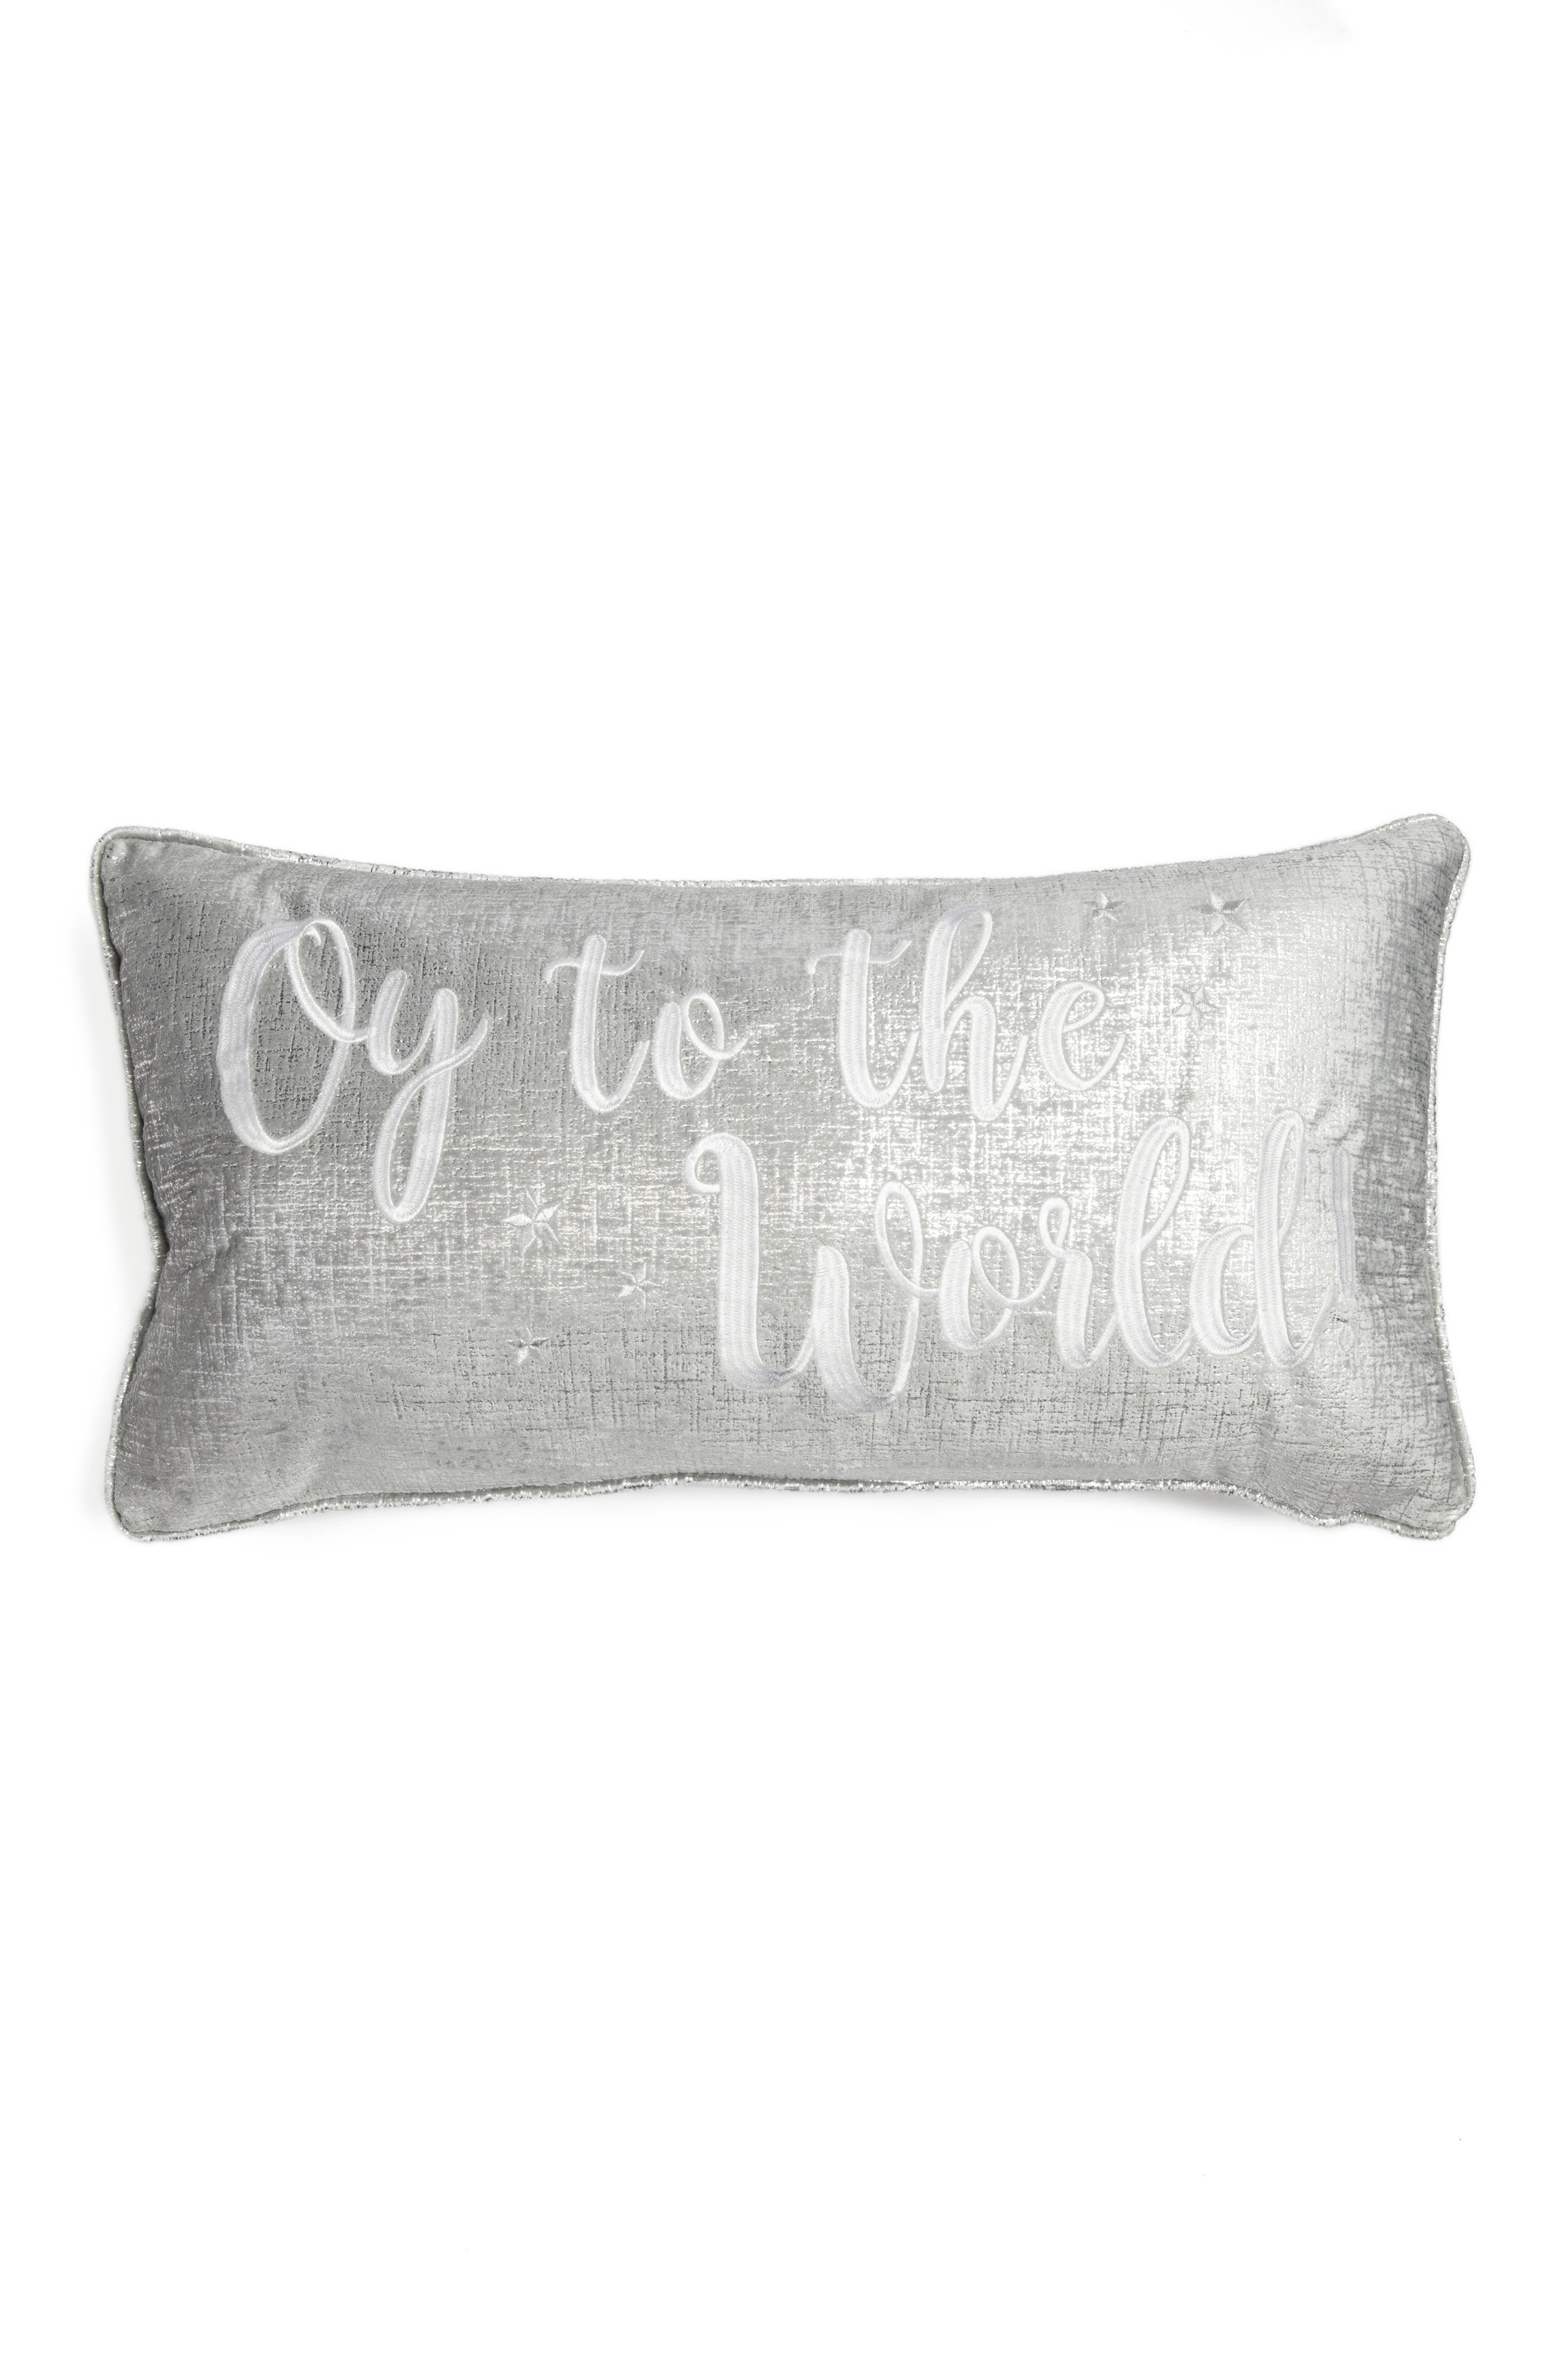 Oy to the World Accent Pillow,                         Main,                         color, Silver